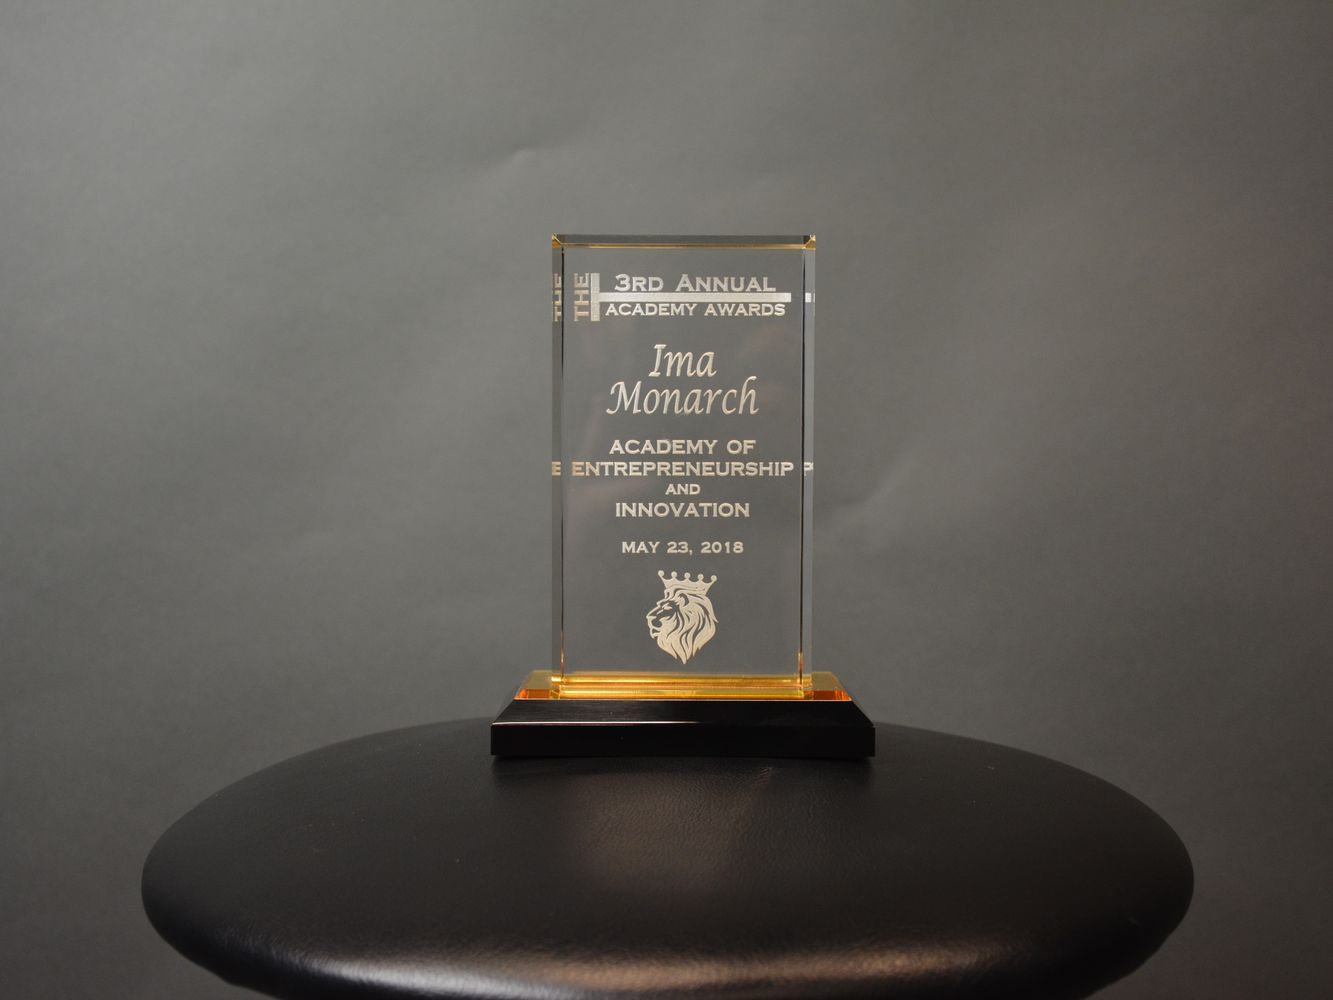 Laser engraved award